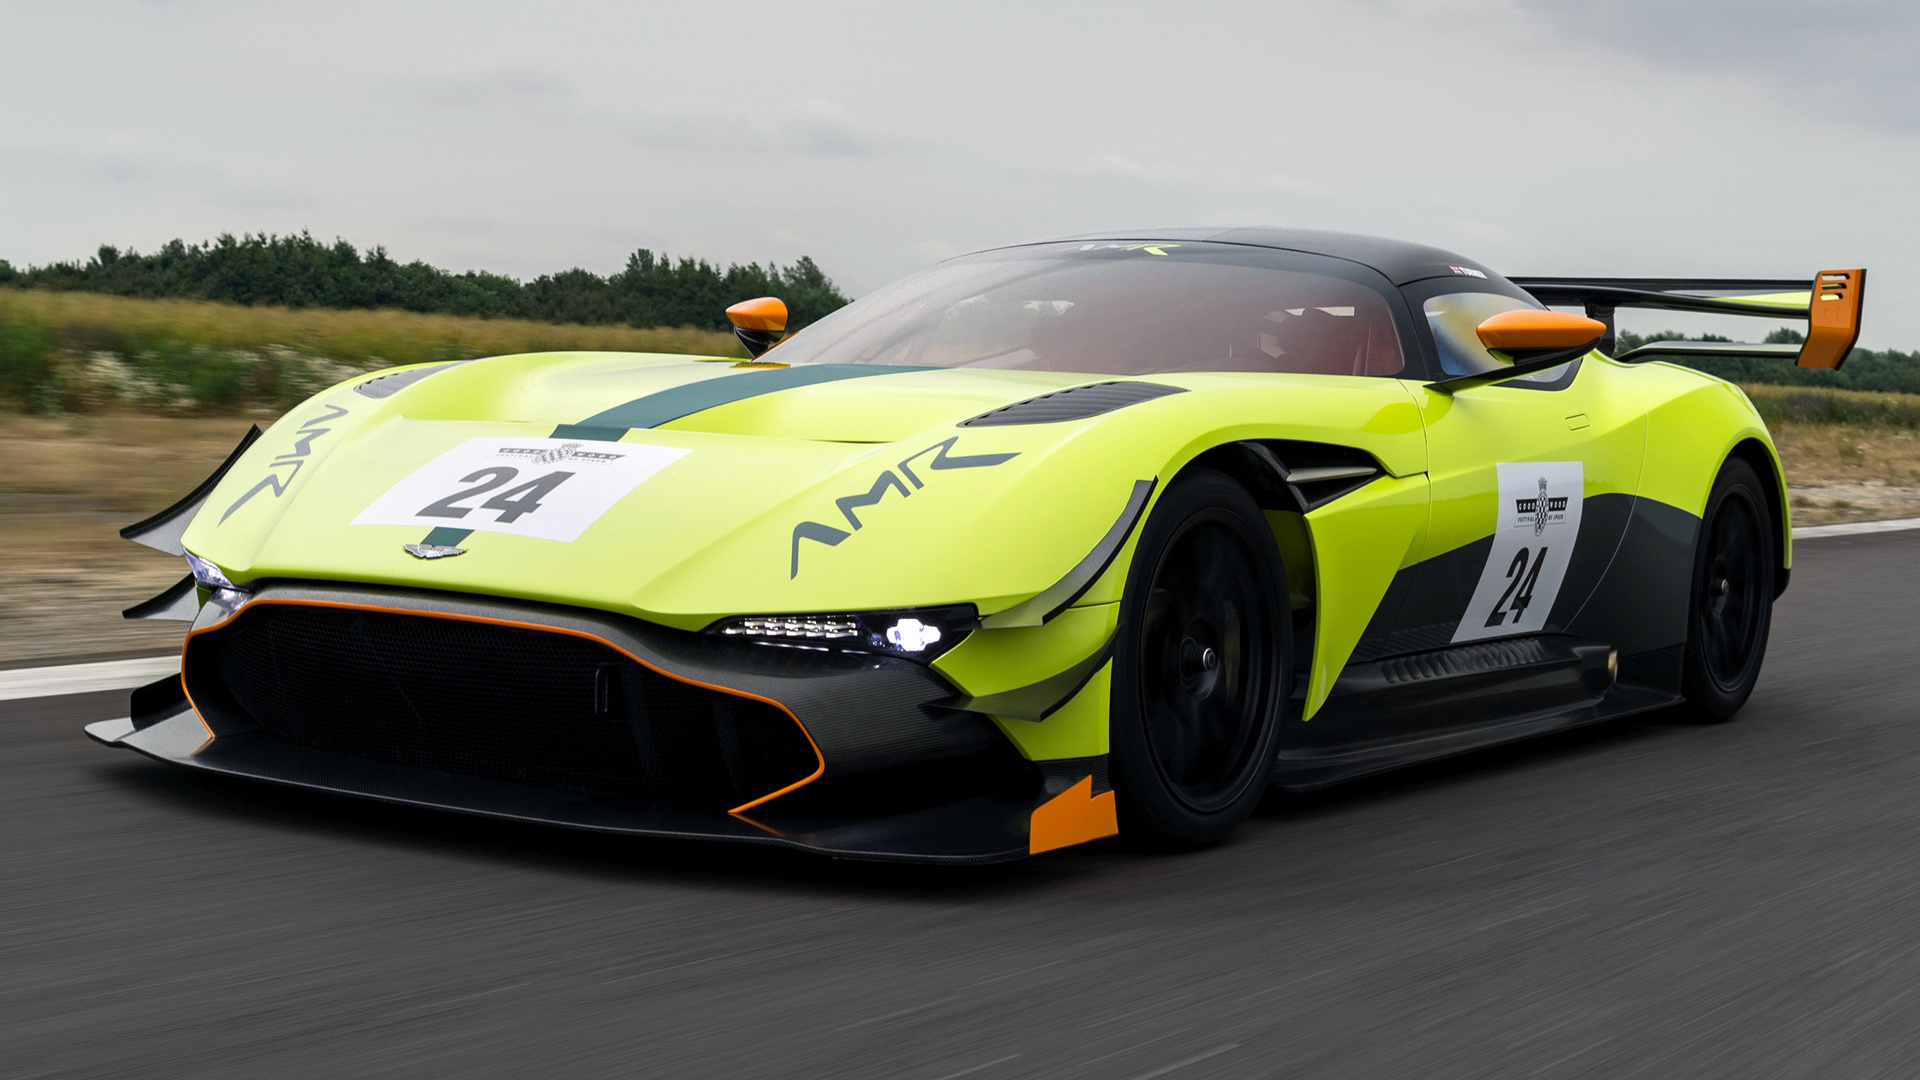 aston martin vulcan amr pro 2017 wallpapers and hd images car pixel. Black Bedroom Furniture Sets. Home Design Ideas